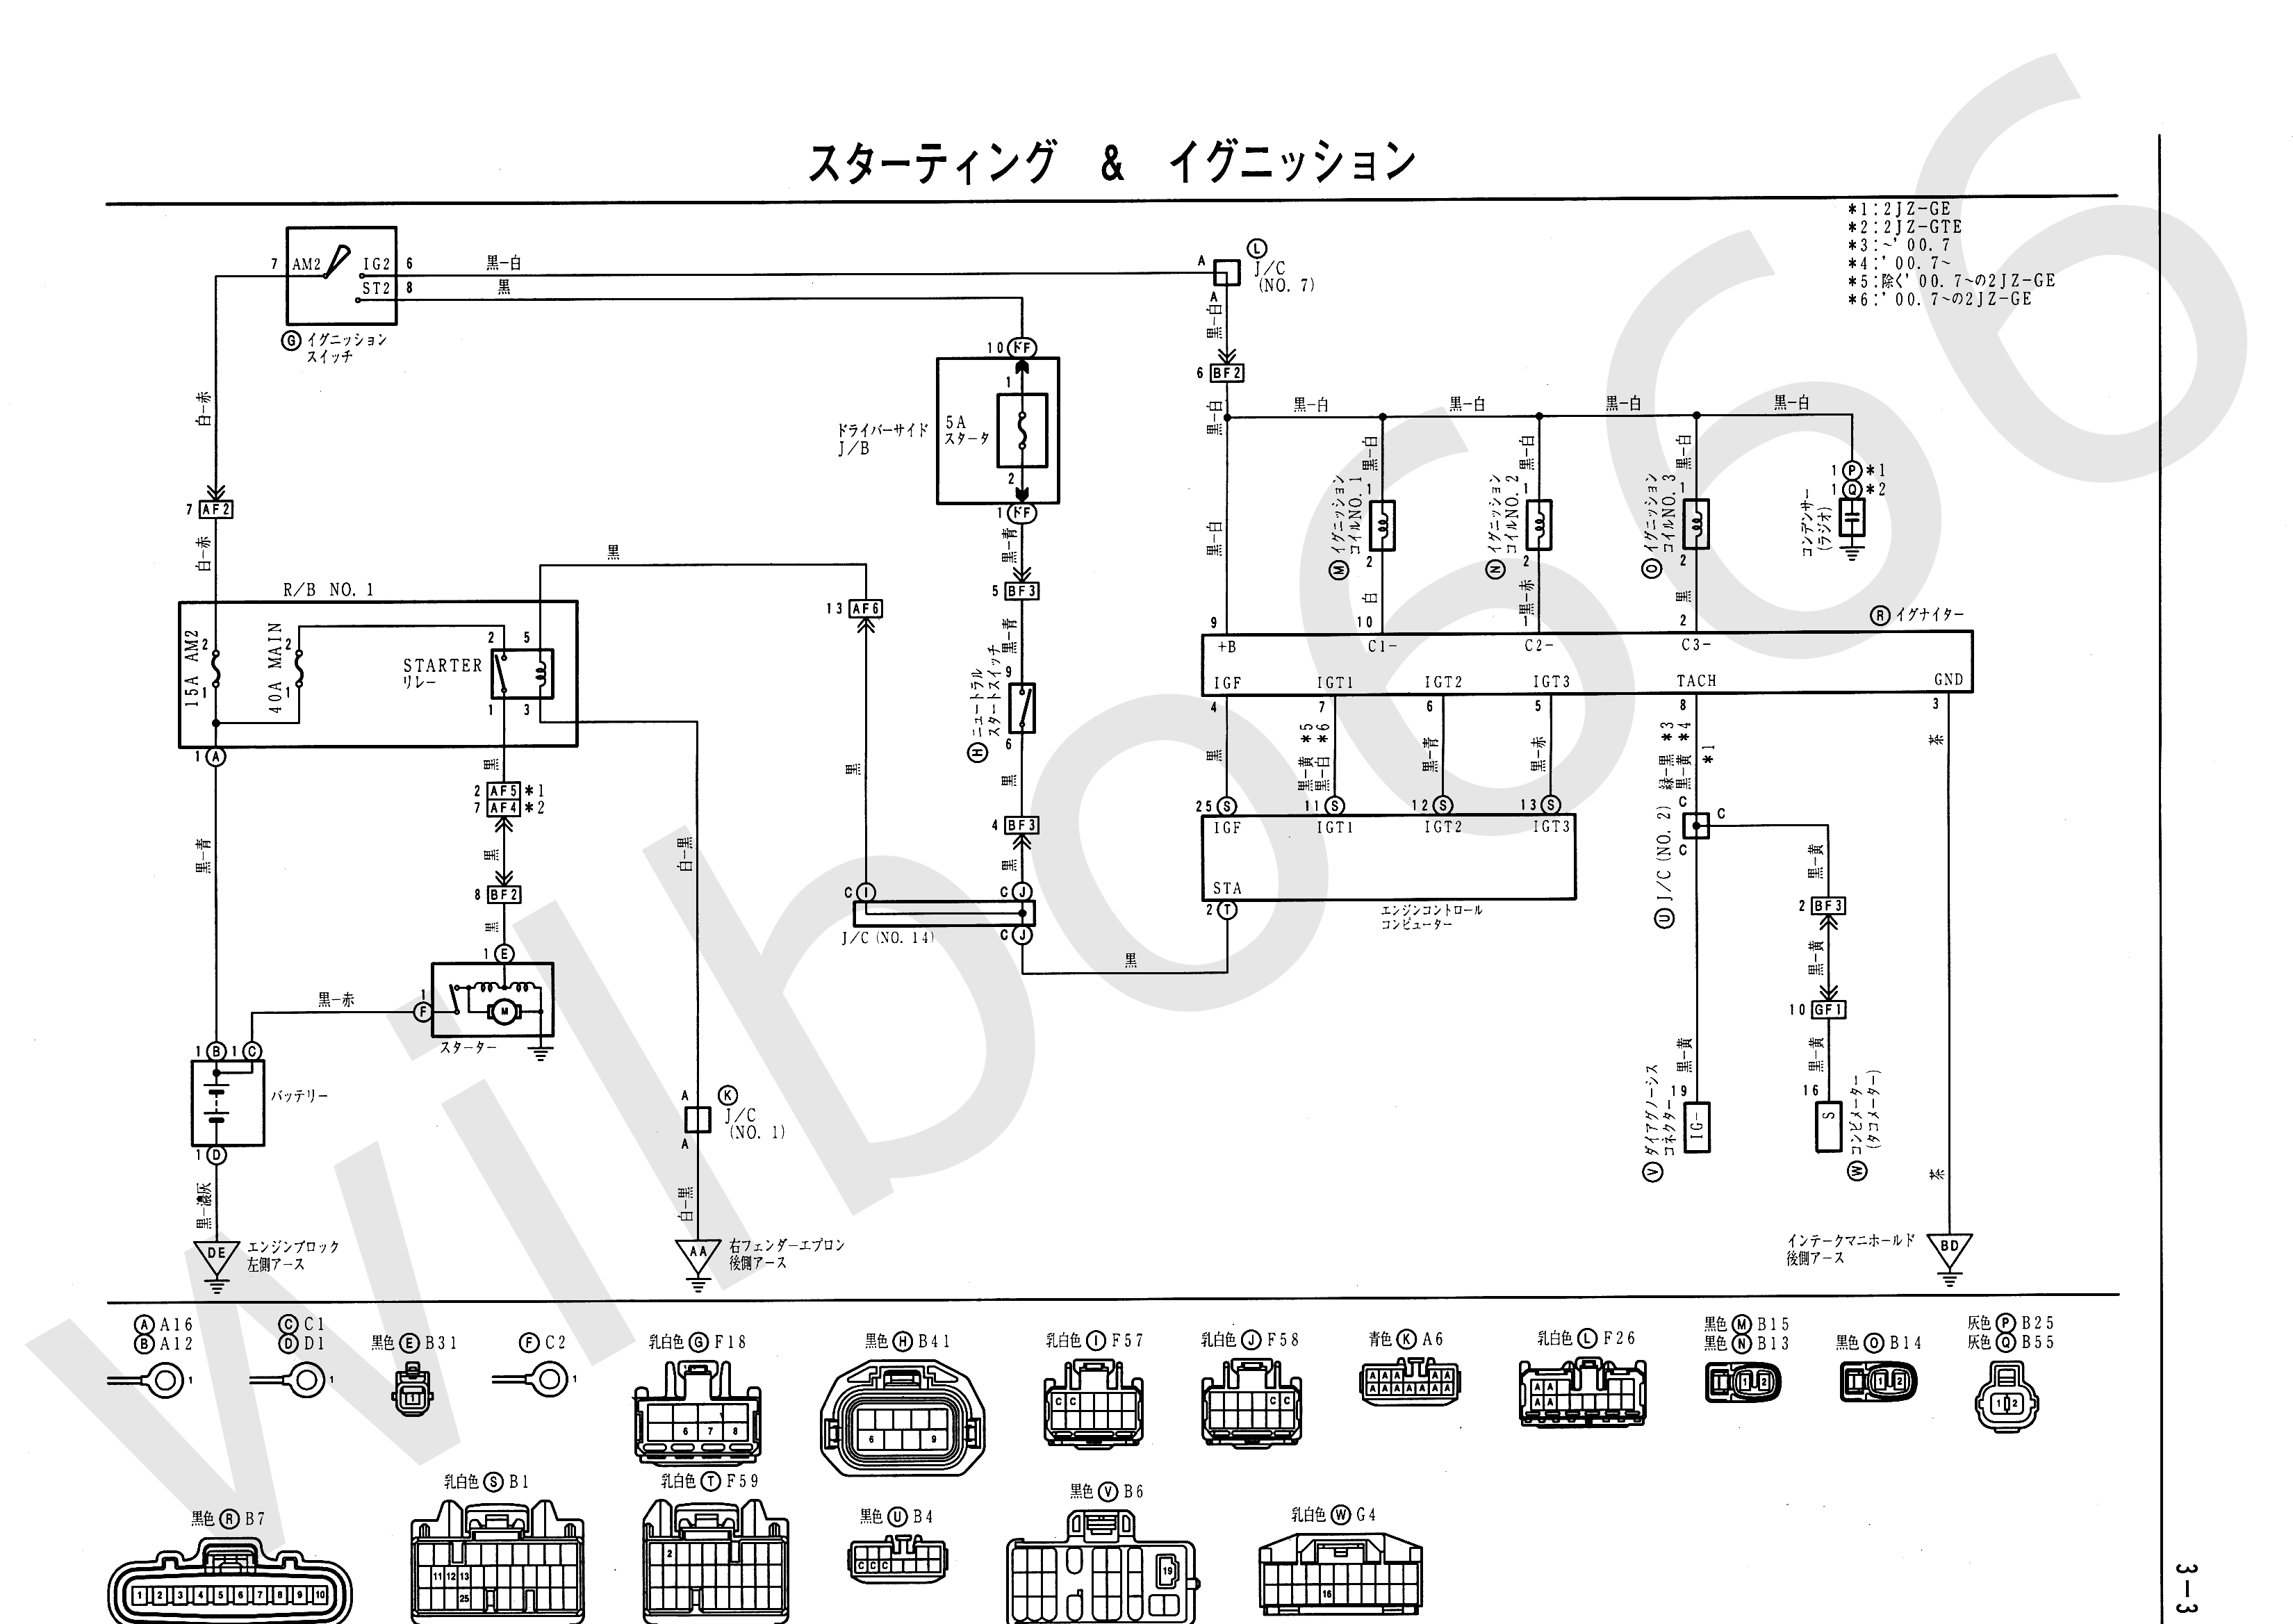 JZS161 Electrical Wiring Diagram 6748505 3 3 wilbo666 2jz gte vvti jzs161 aristo engine wiring TPS Adapter Wire at eliteediting.co